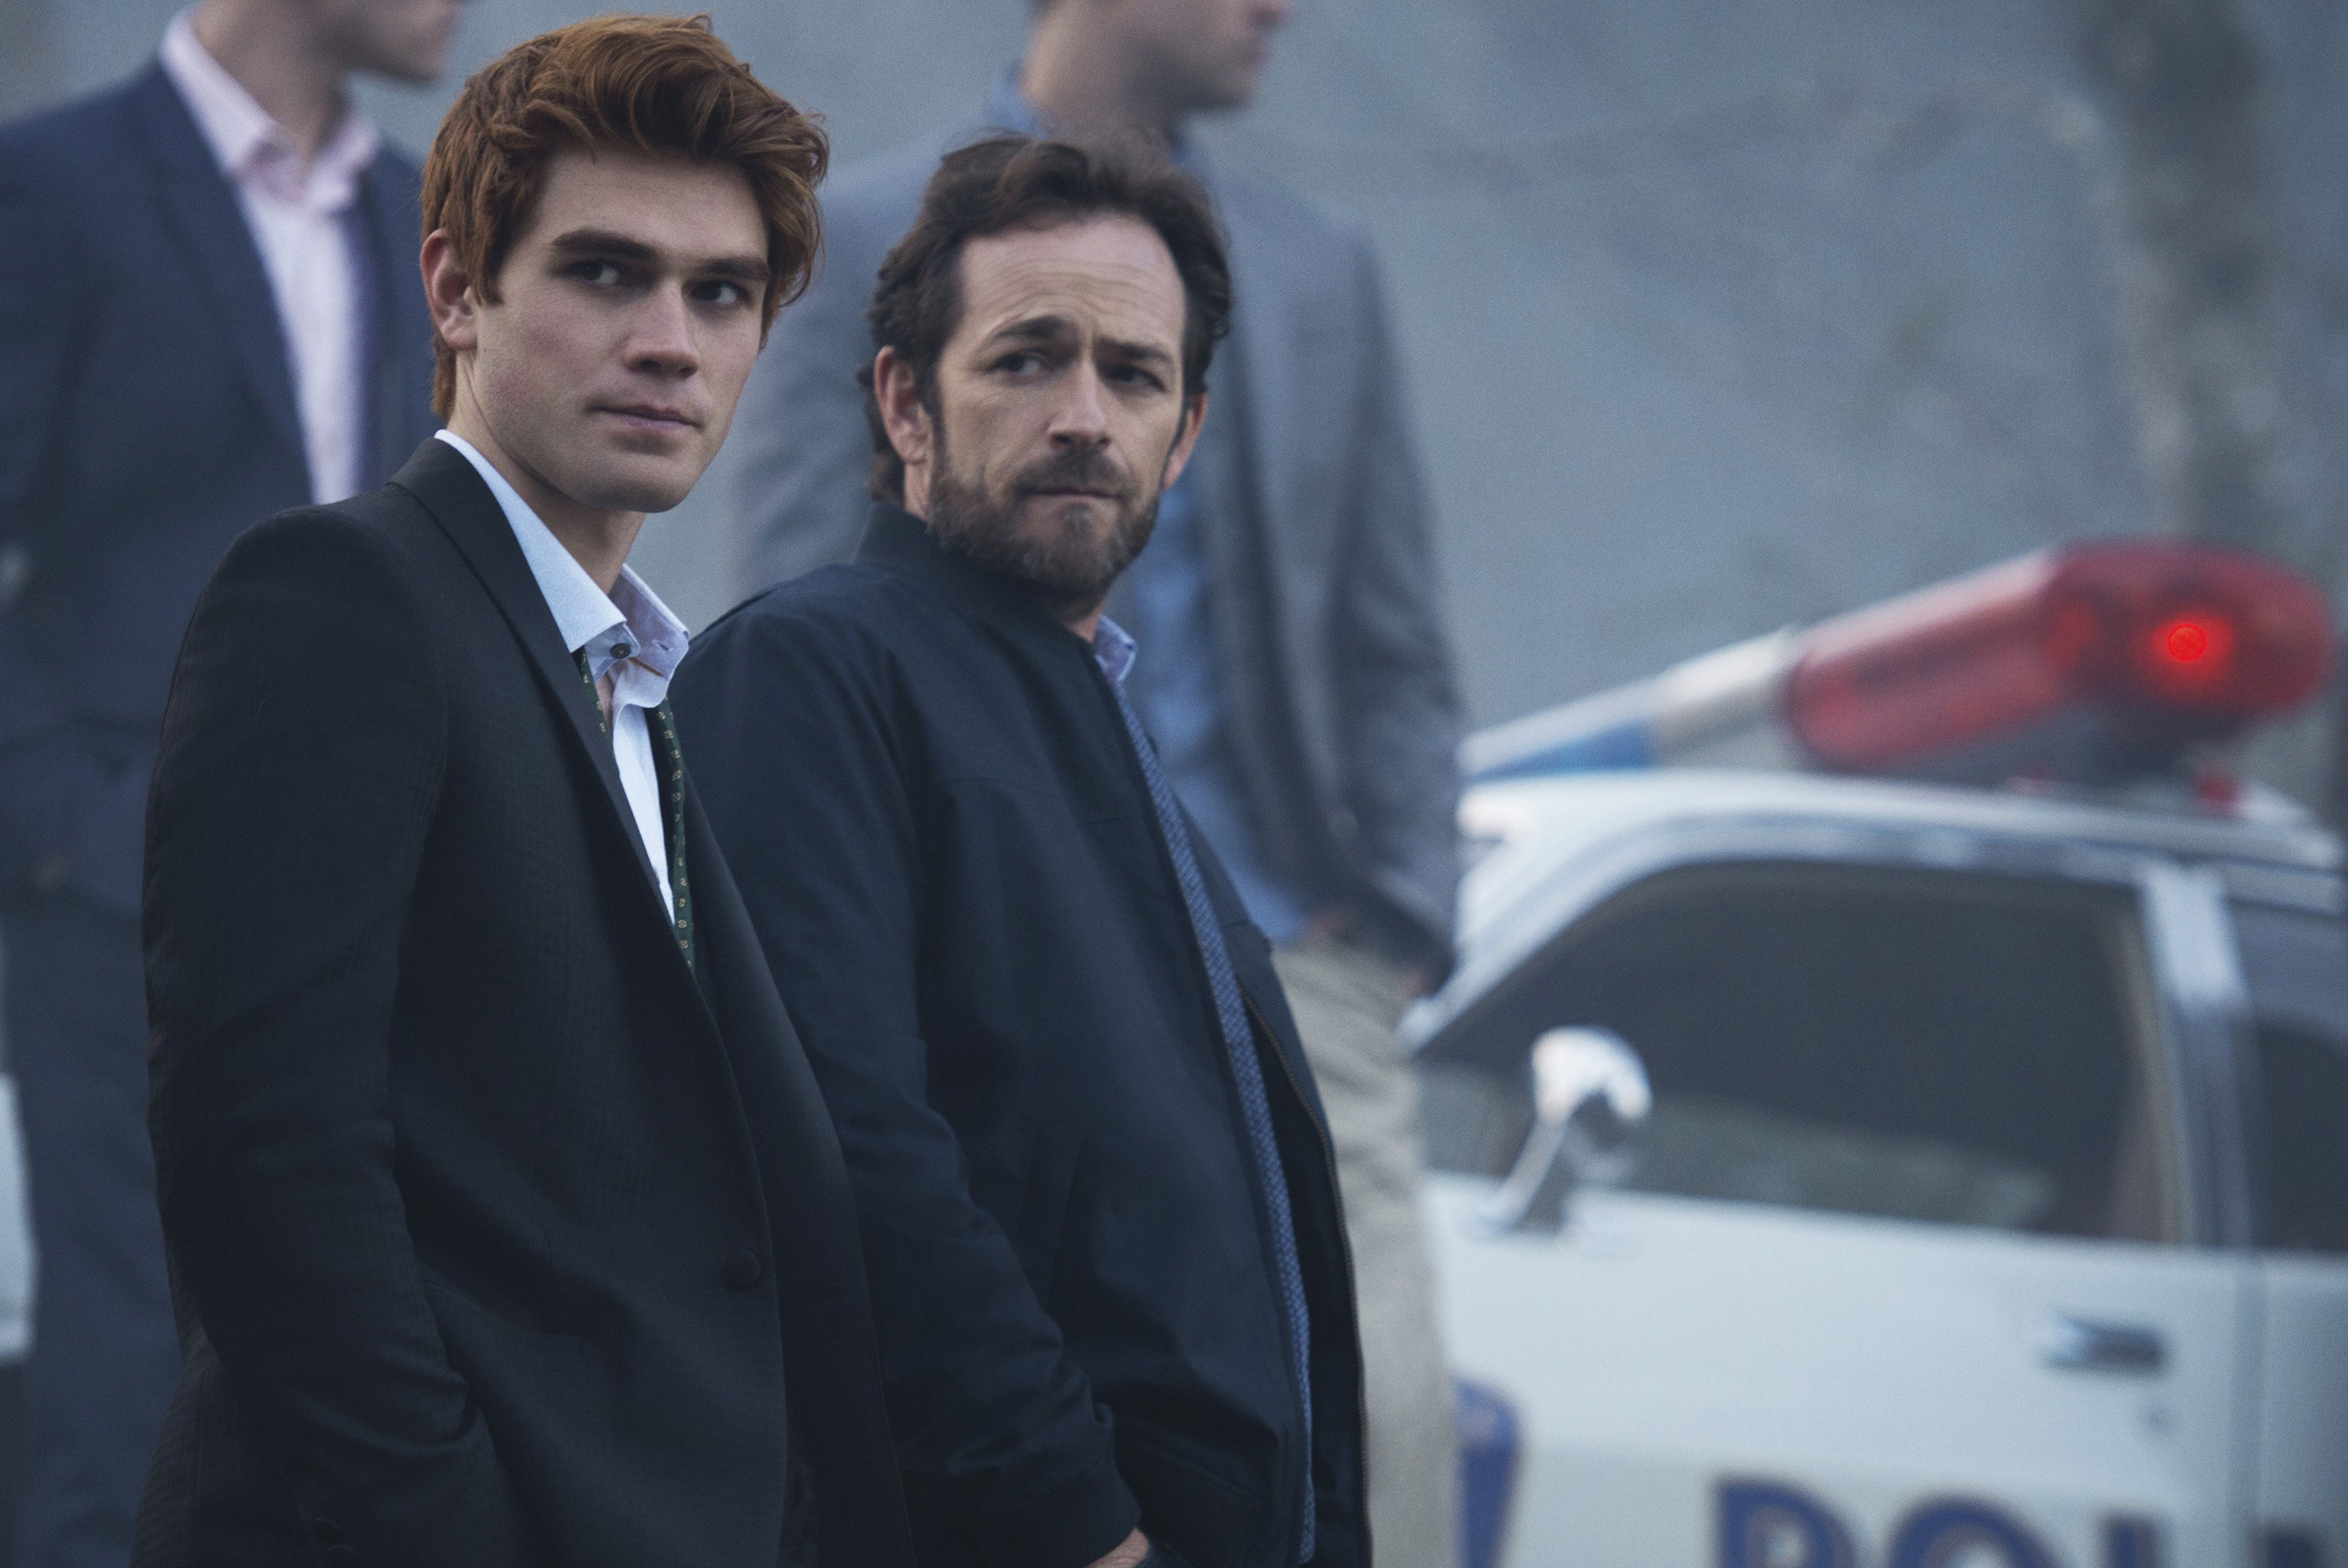 Luke Perry's Death Will Be Addressed on 'Riverdale'